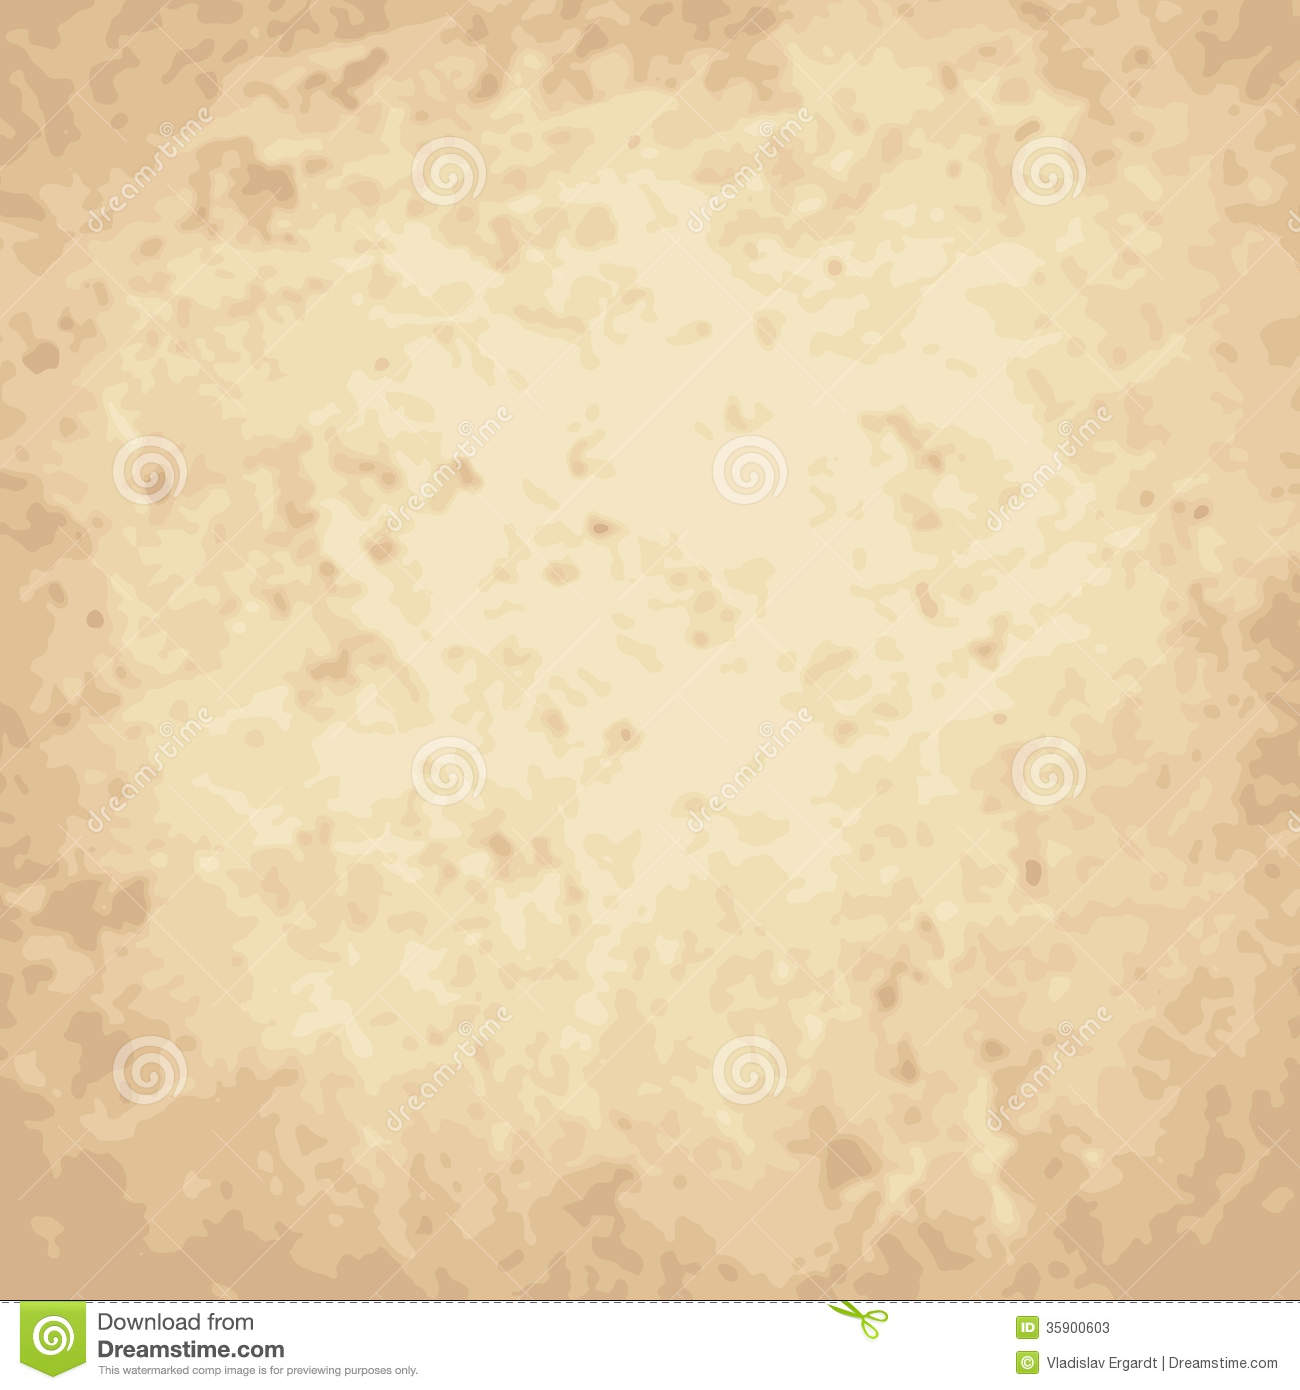 Vector Vintage Background, Crumpled, Scratch Paper Stock ...